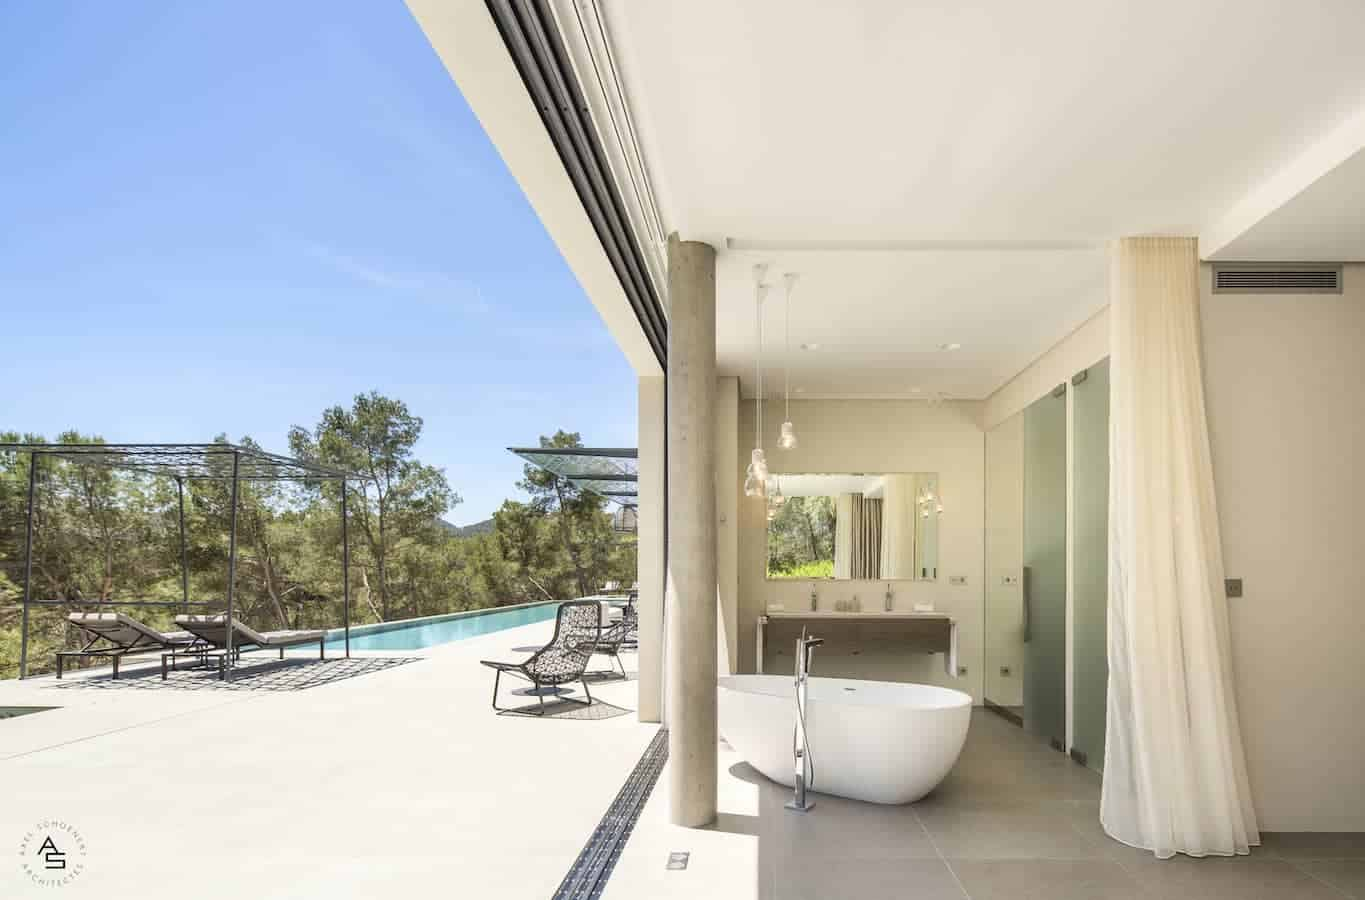 Villa située à Ibiza, réalisée par les architectes Axel Schoenert et Zsofia Varnagy, utilisant le revêtement de sol grès cérame Cluny, en version outdoor Argerot Layè et indoor Argerot Sablé de Cotto d'Este, pour un aspect visuel continu. ©Cotto d'Este